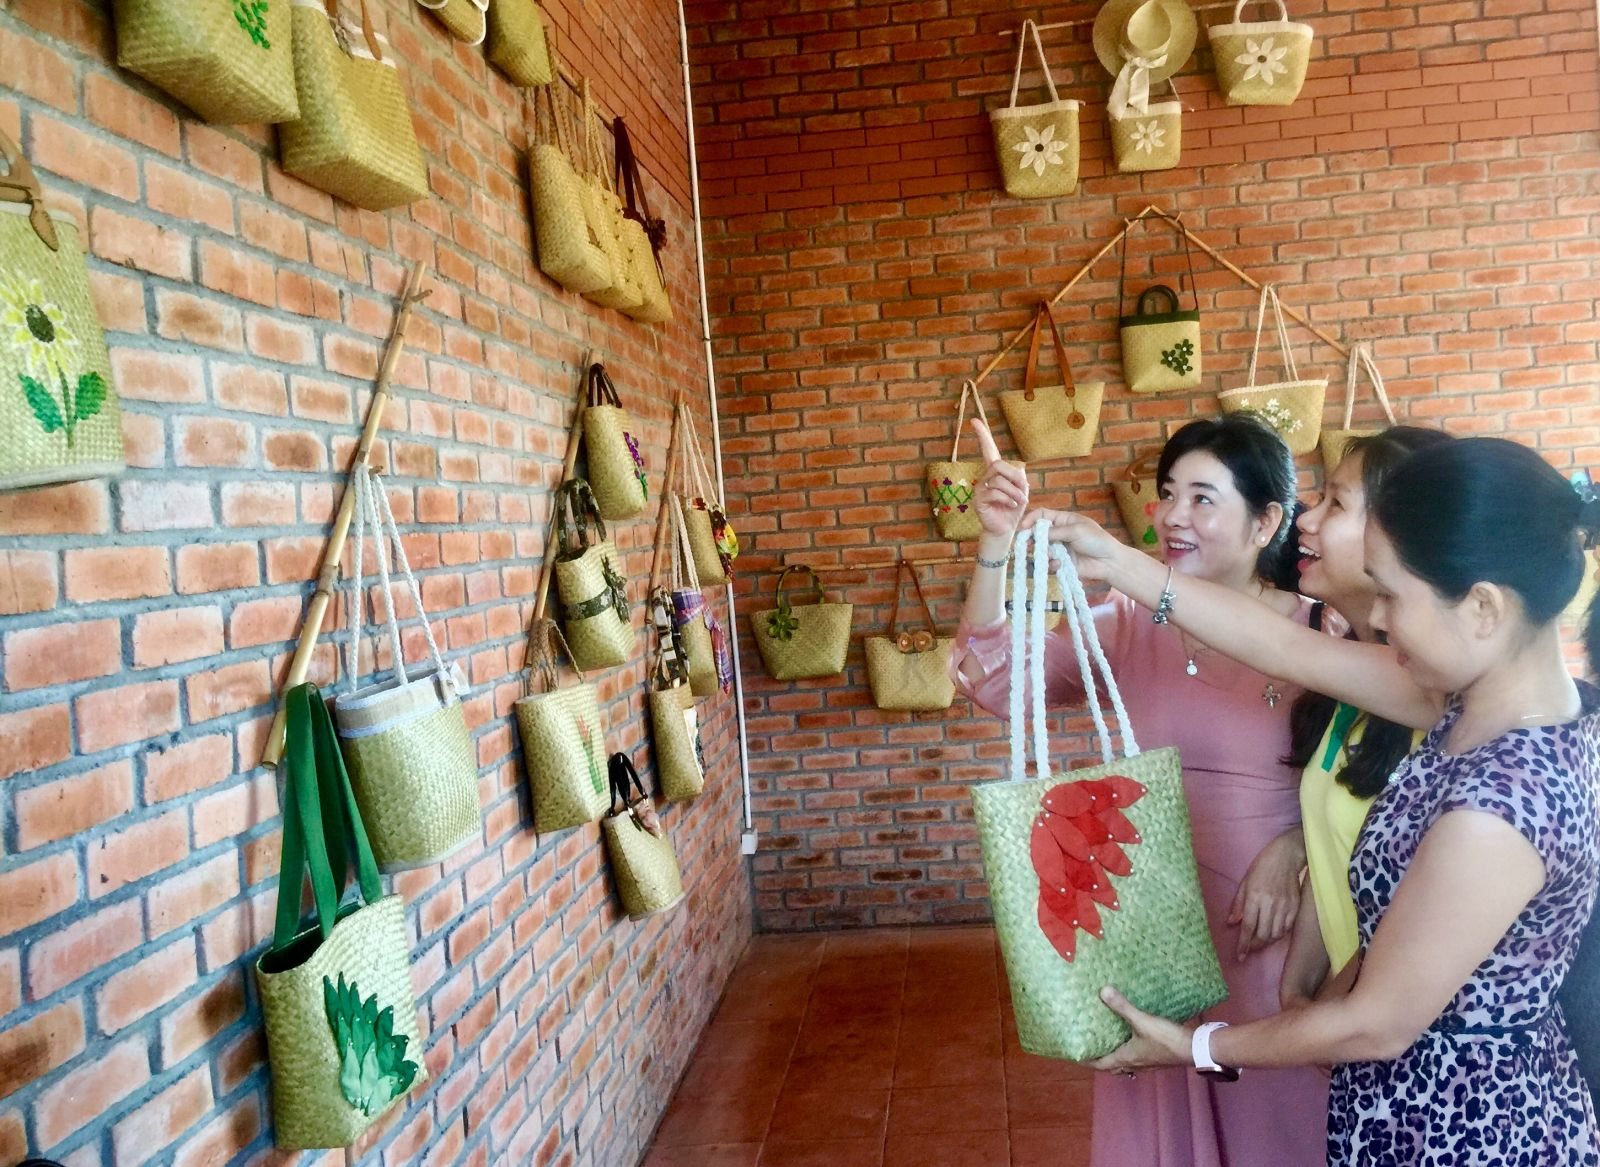 Apart from cushions and mats (for newborn babies), Bang grass is also used to make handbags